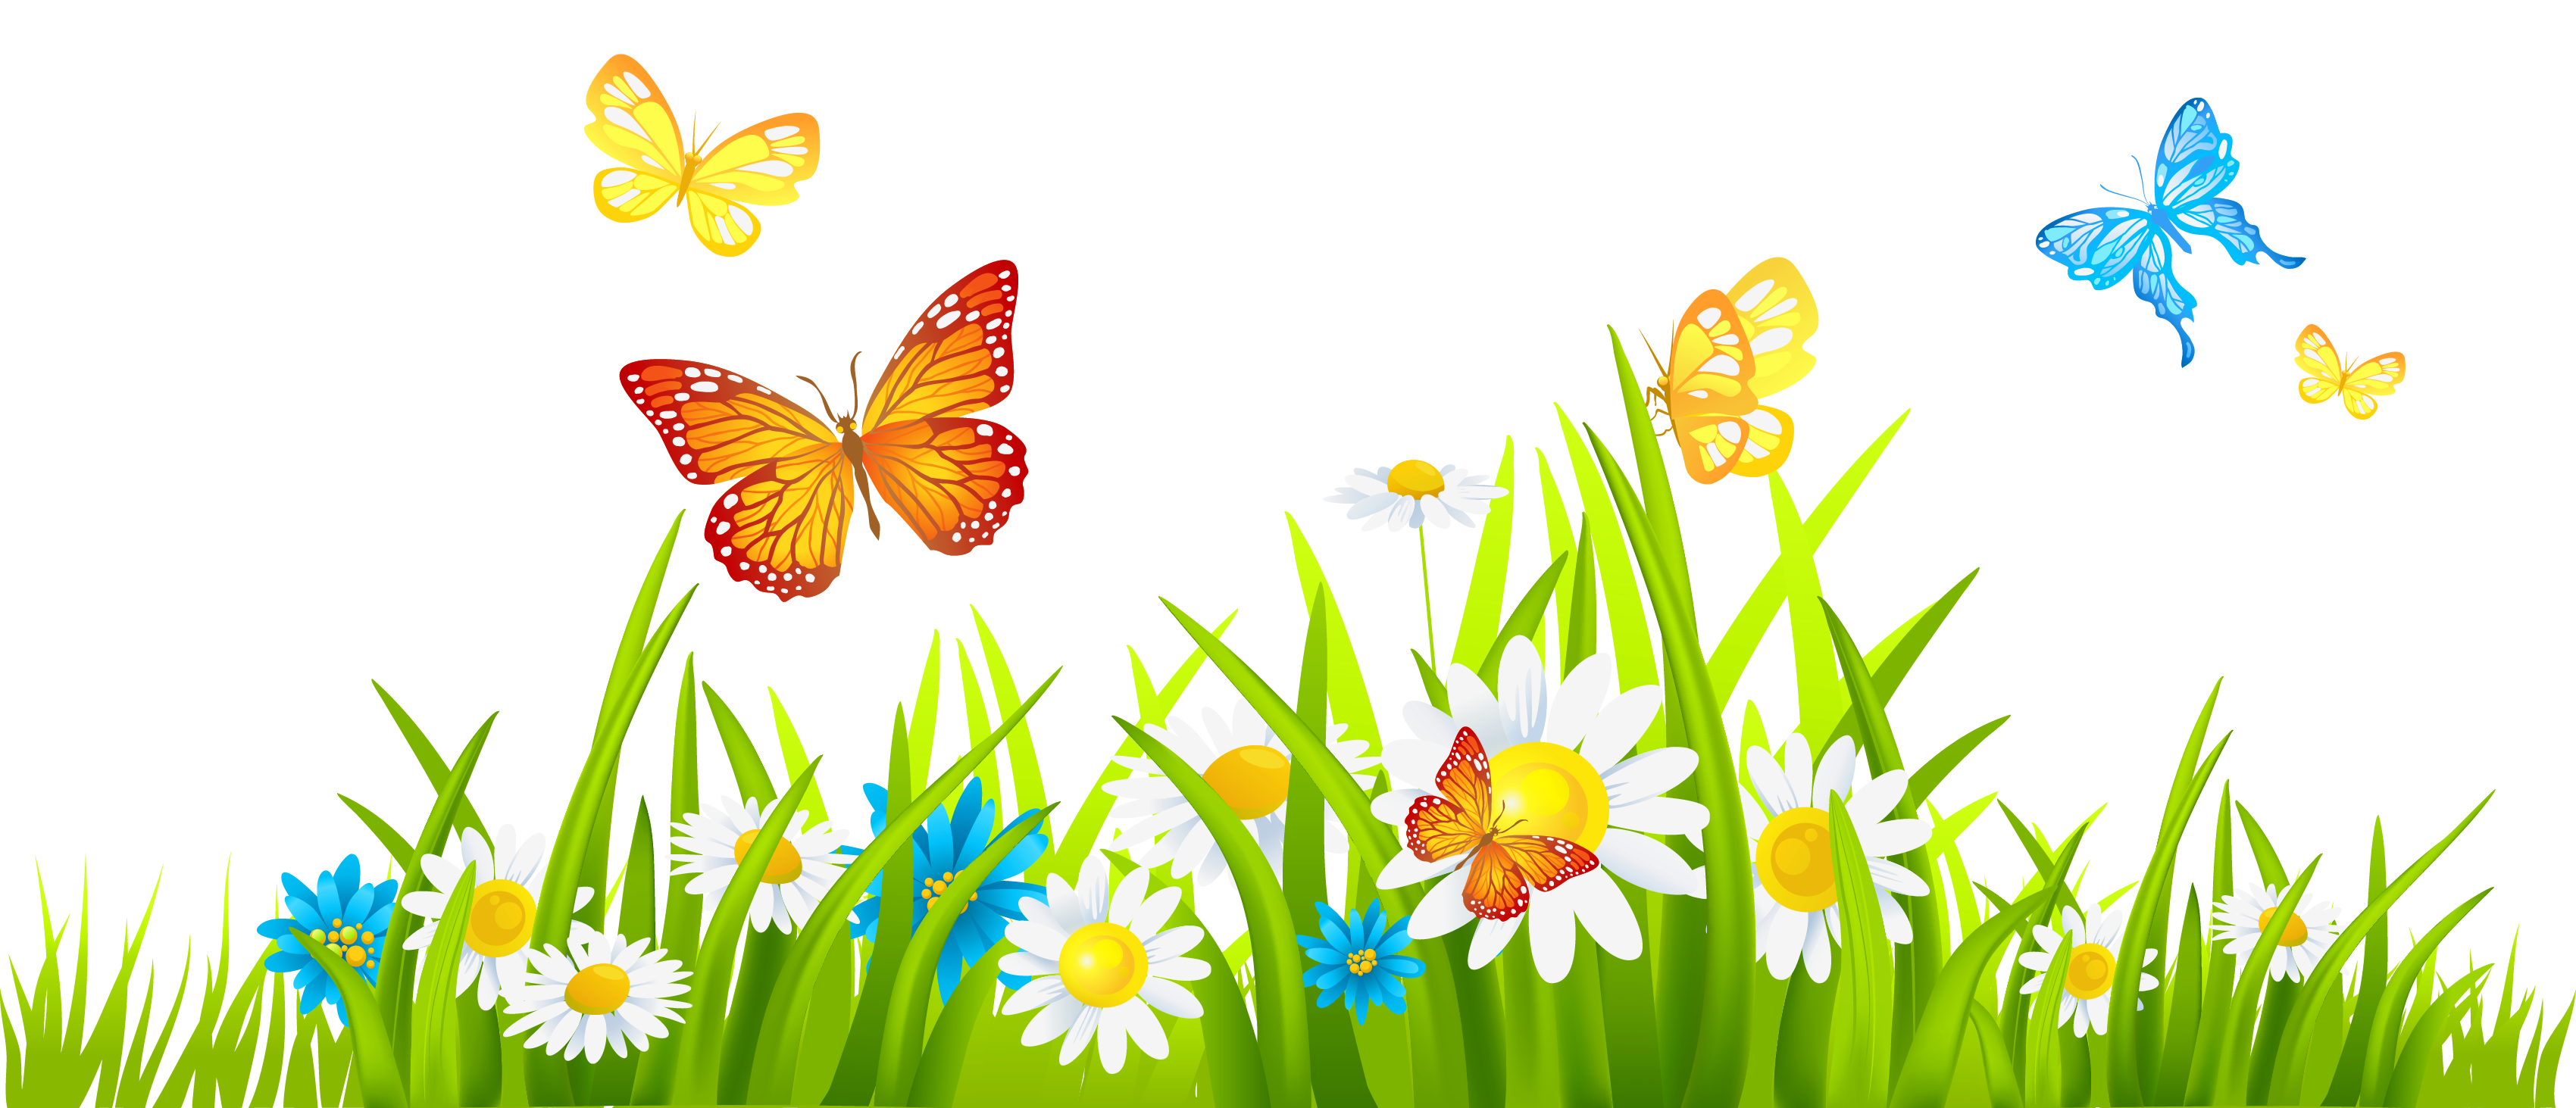 Wonderful of png letters. Flower garden clipart images